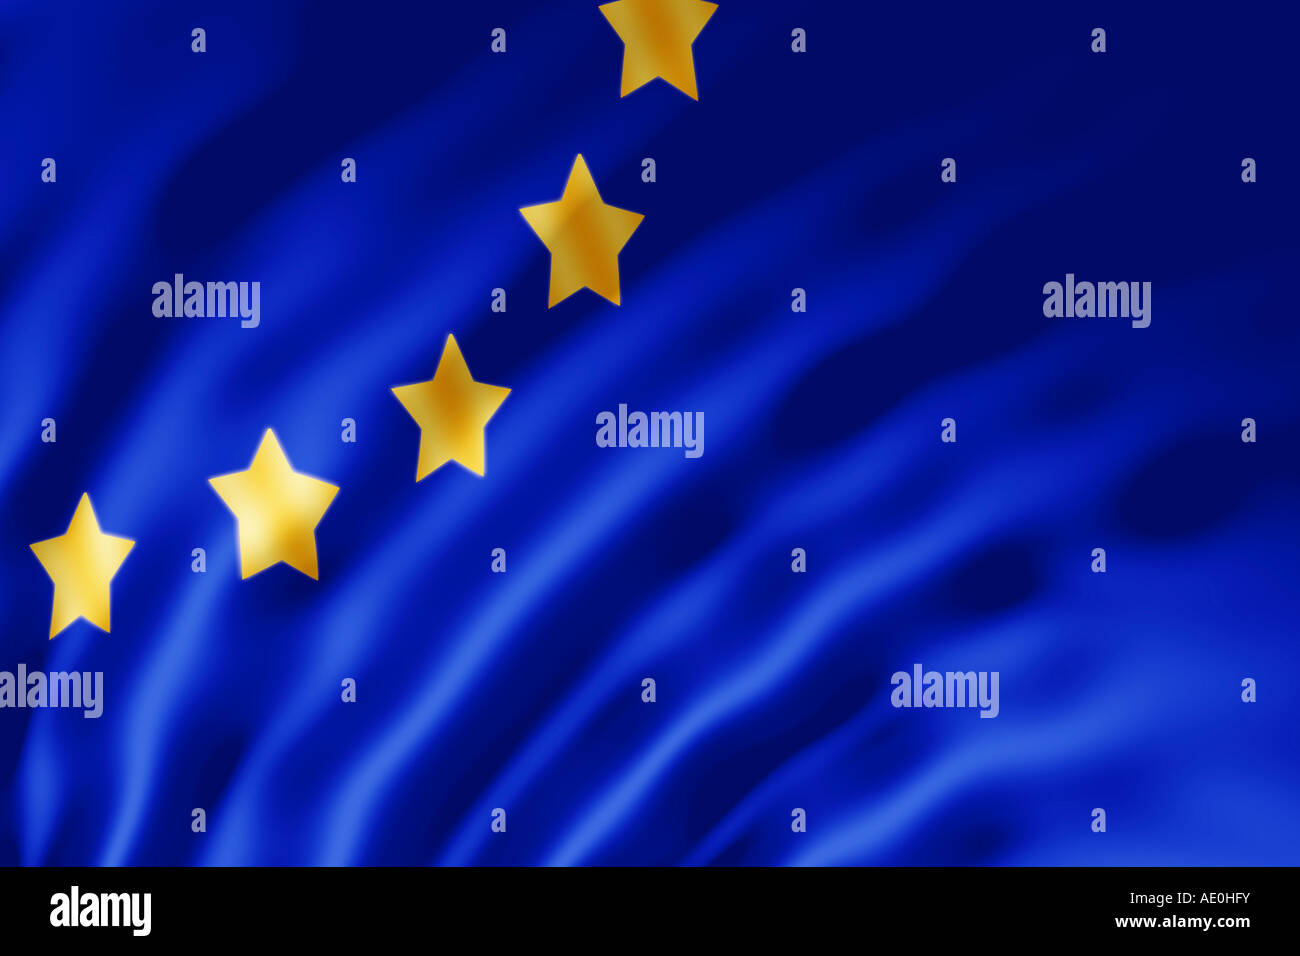 The European Union flag shown with ripples caused by the wind - Stock Image